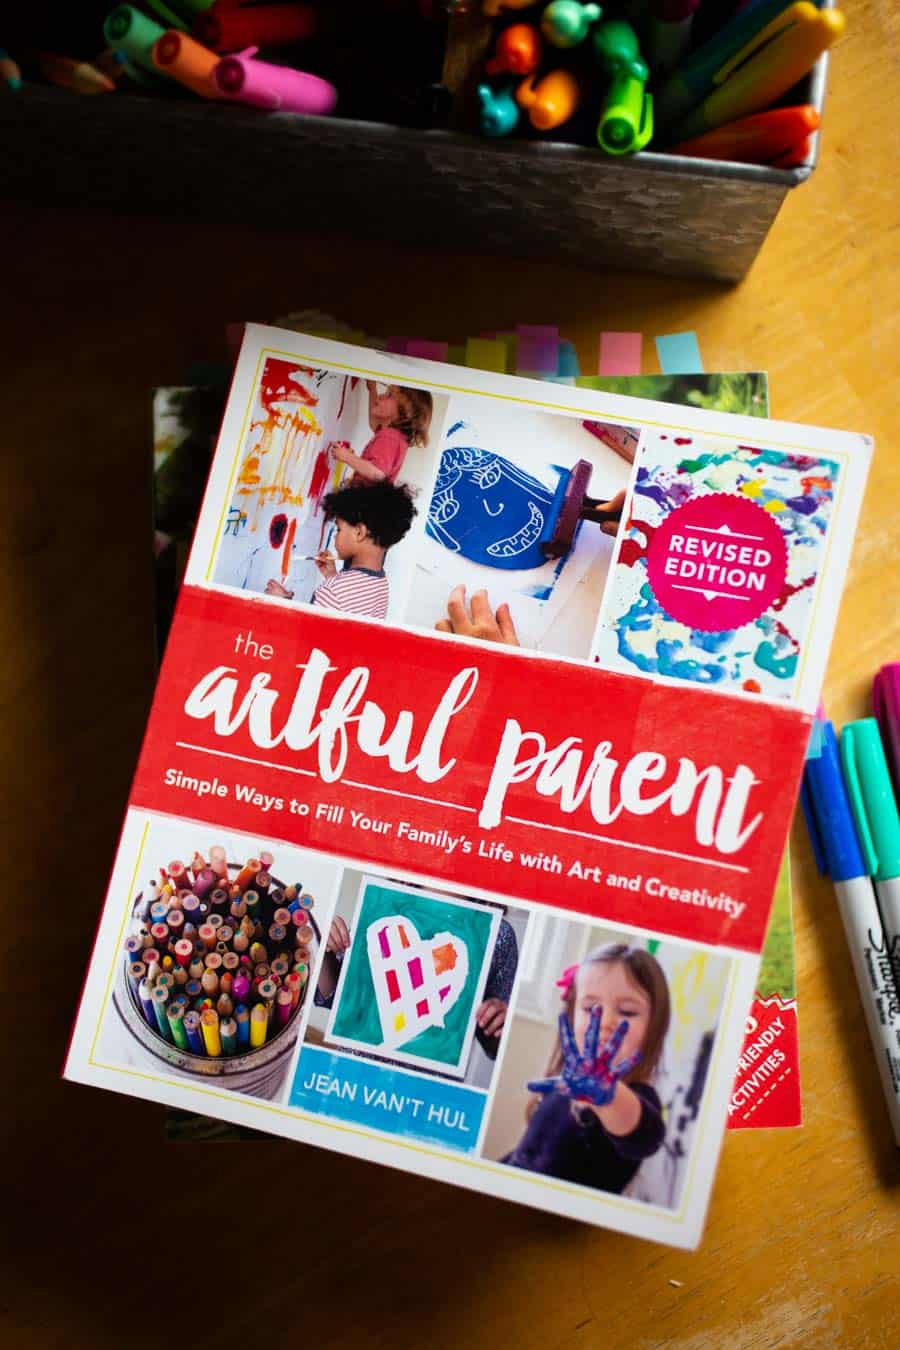 The Artful Parent: Simple Ways to Fill Your Family's Life With Art & Creativity.